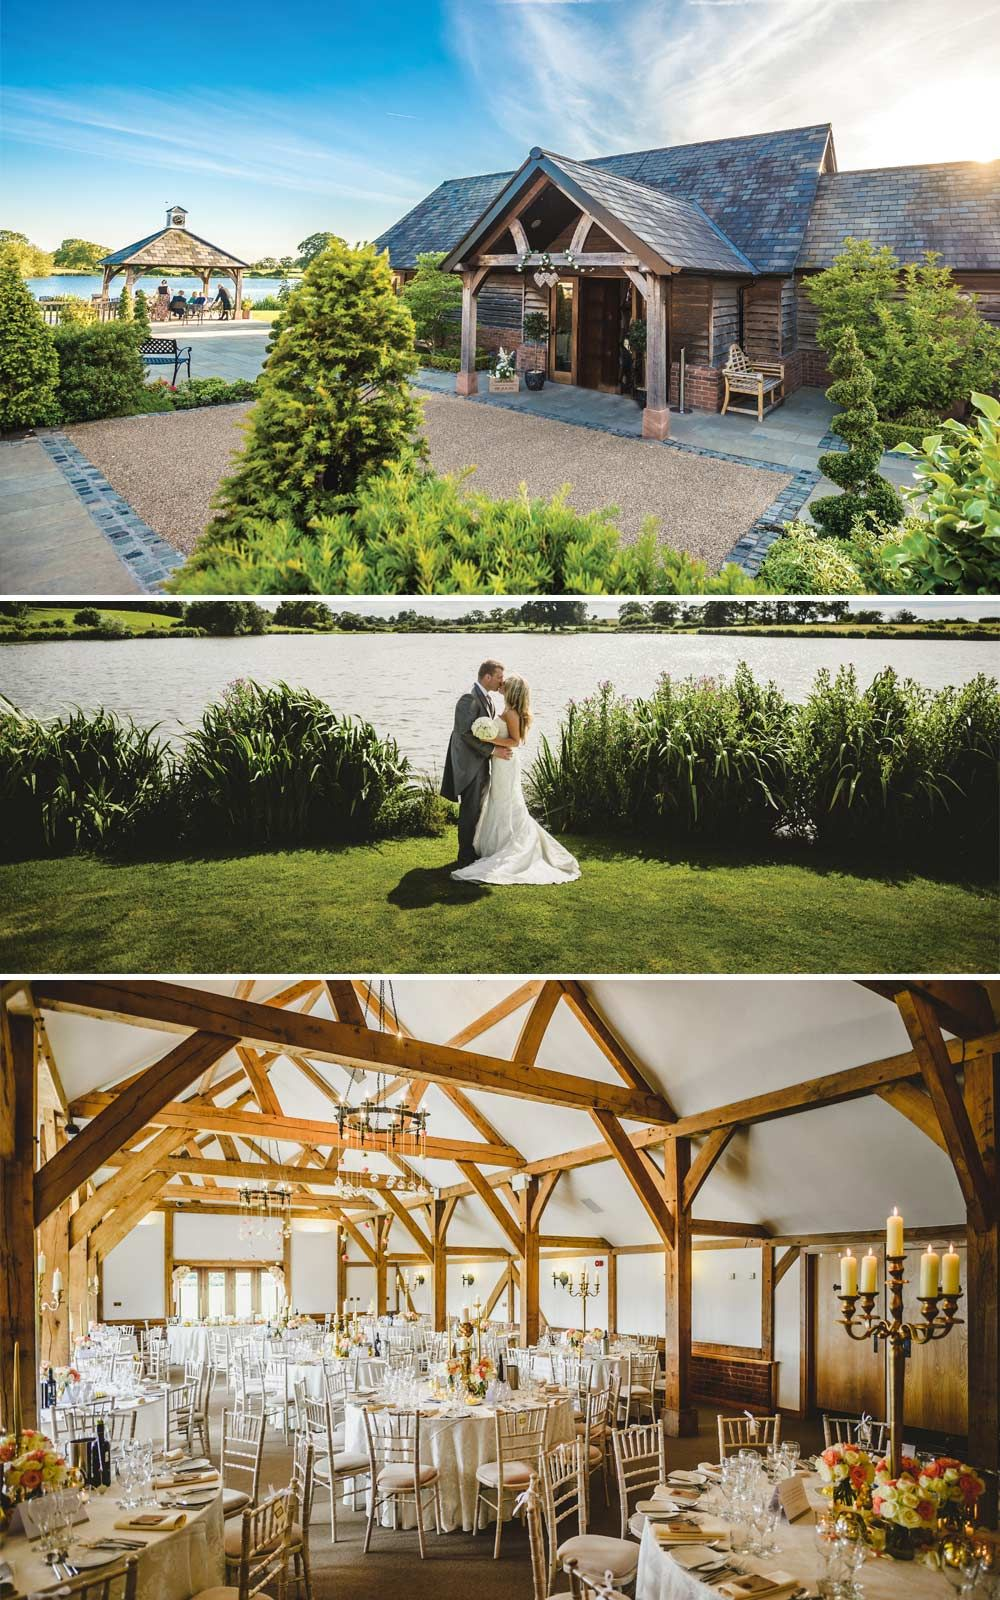 Barn Wedding Venues Are All The Rage Right Now And Sandhole Oak In Cheshire